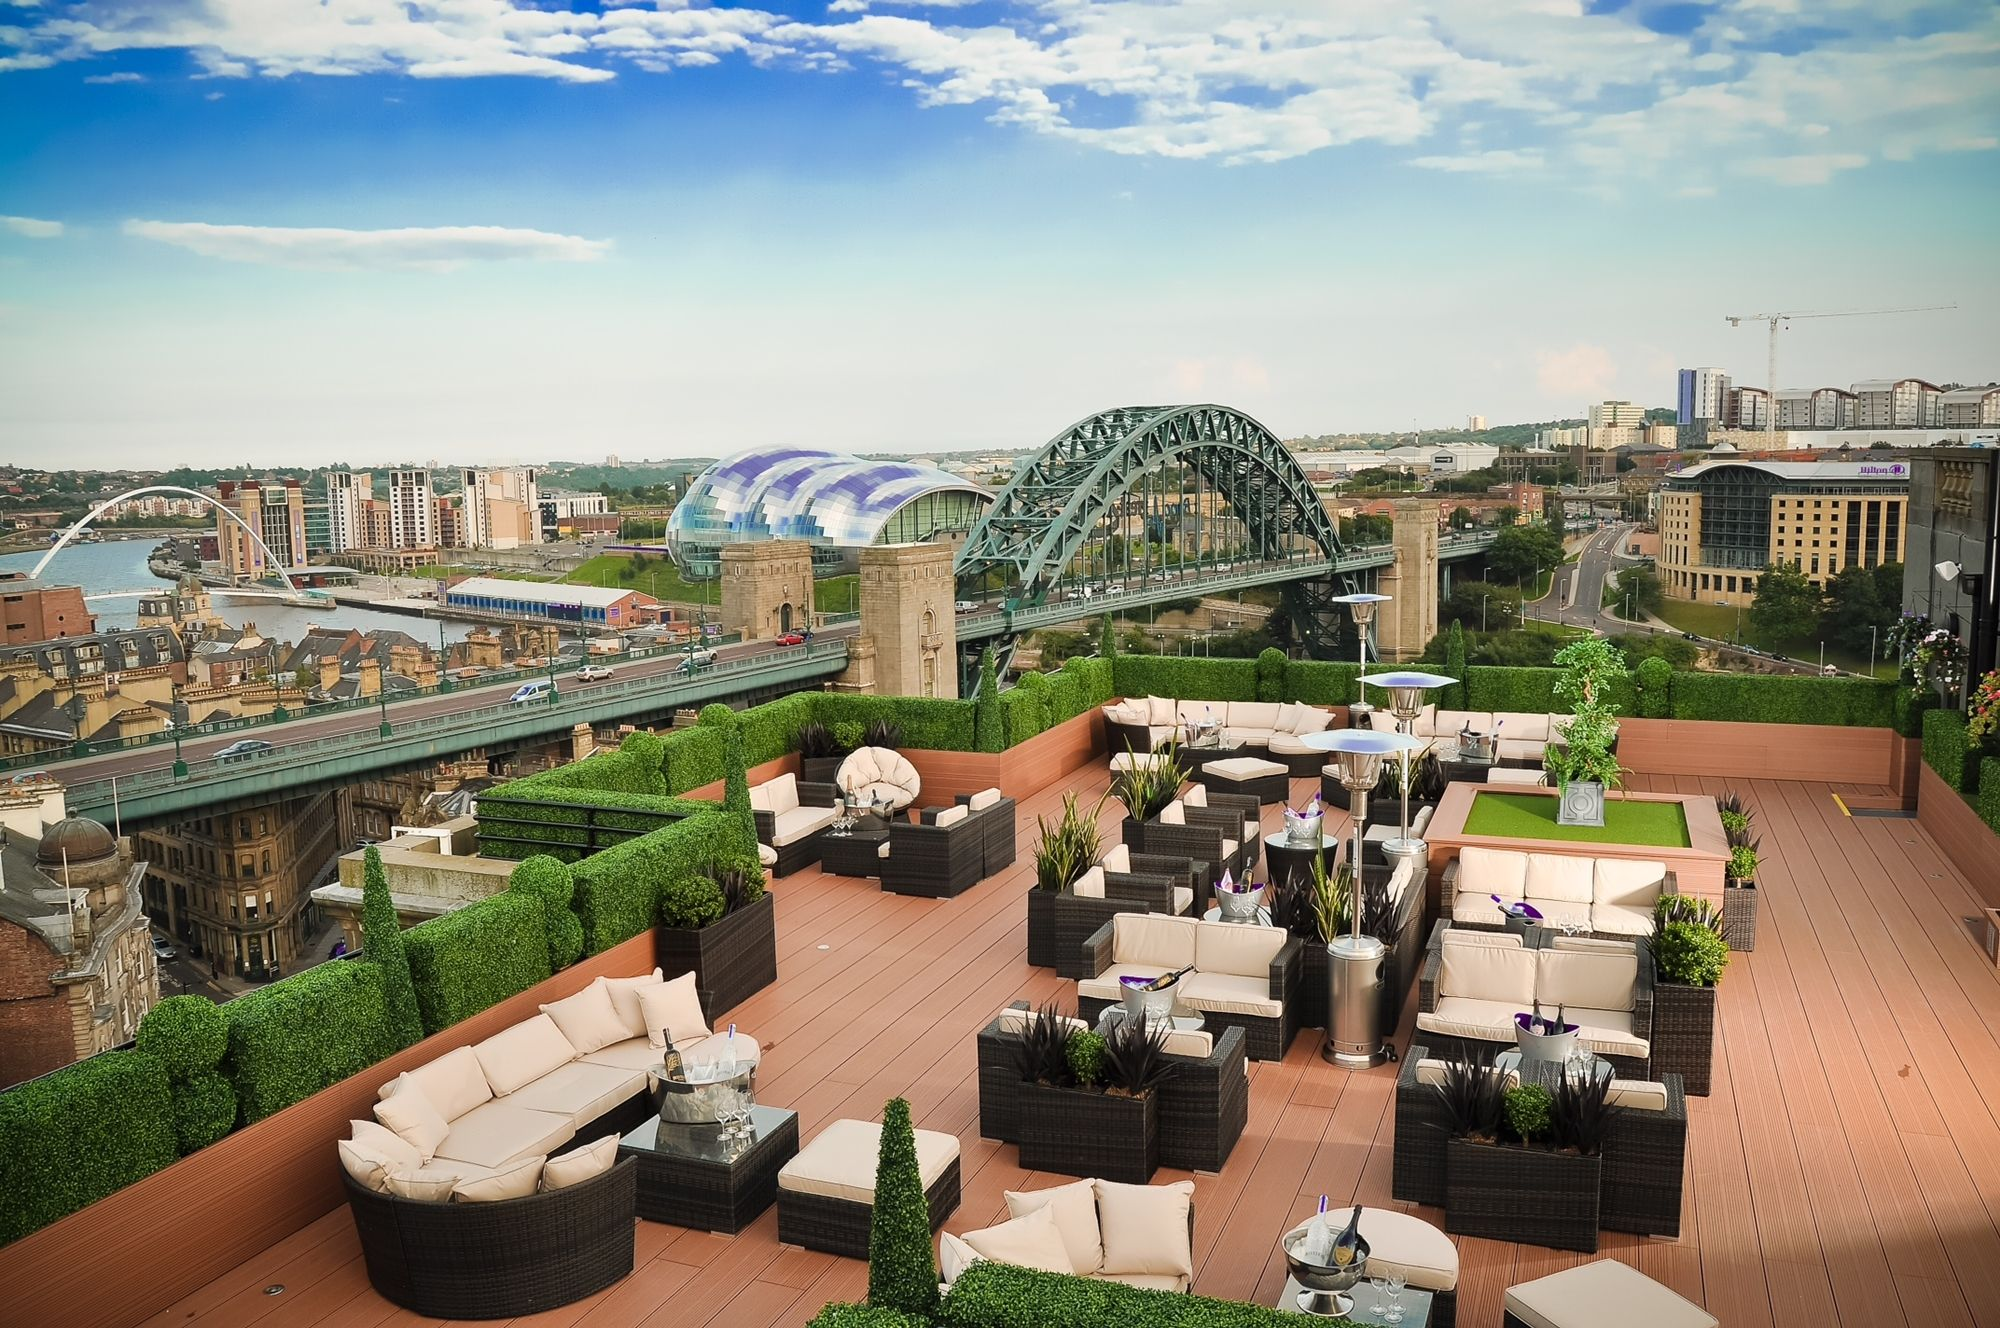 The Vermont Hotel's Sky Lounge features incredible panoramic views of Newcastle City including the Quayside and Castle.